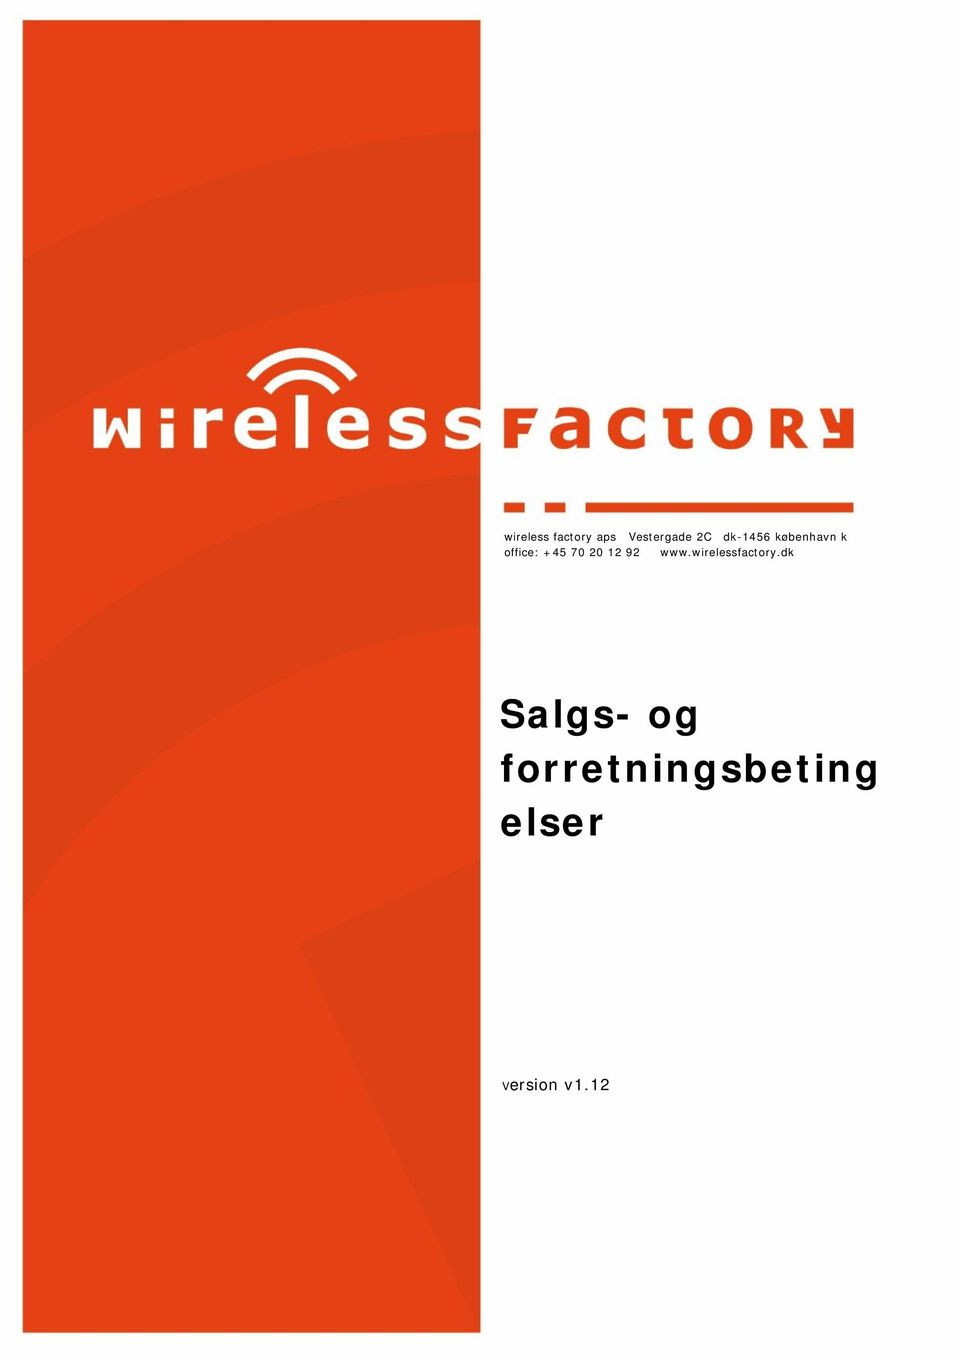 12 92 www.wirelessfactory.